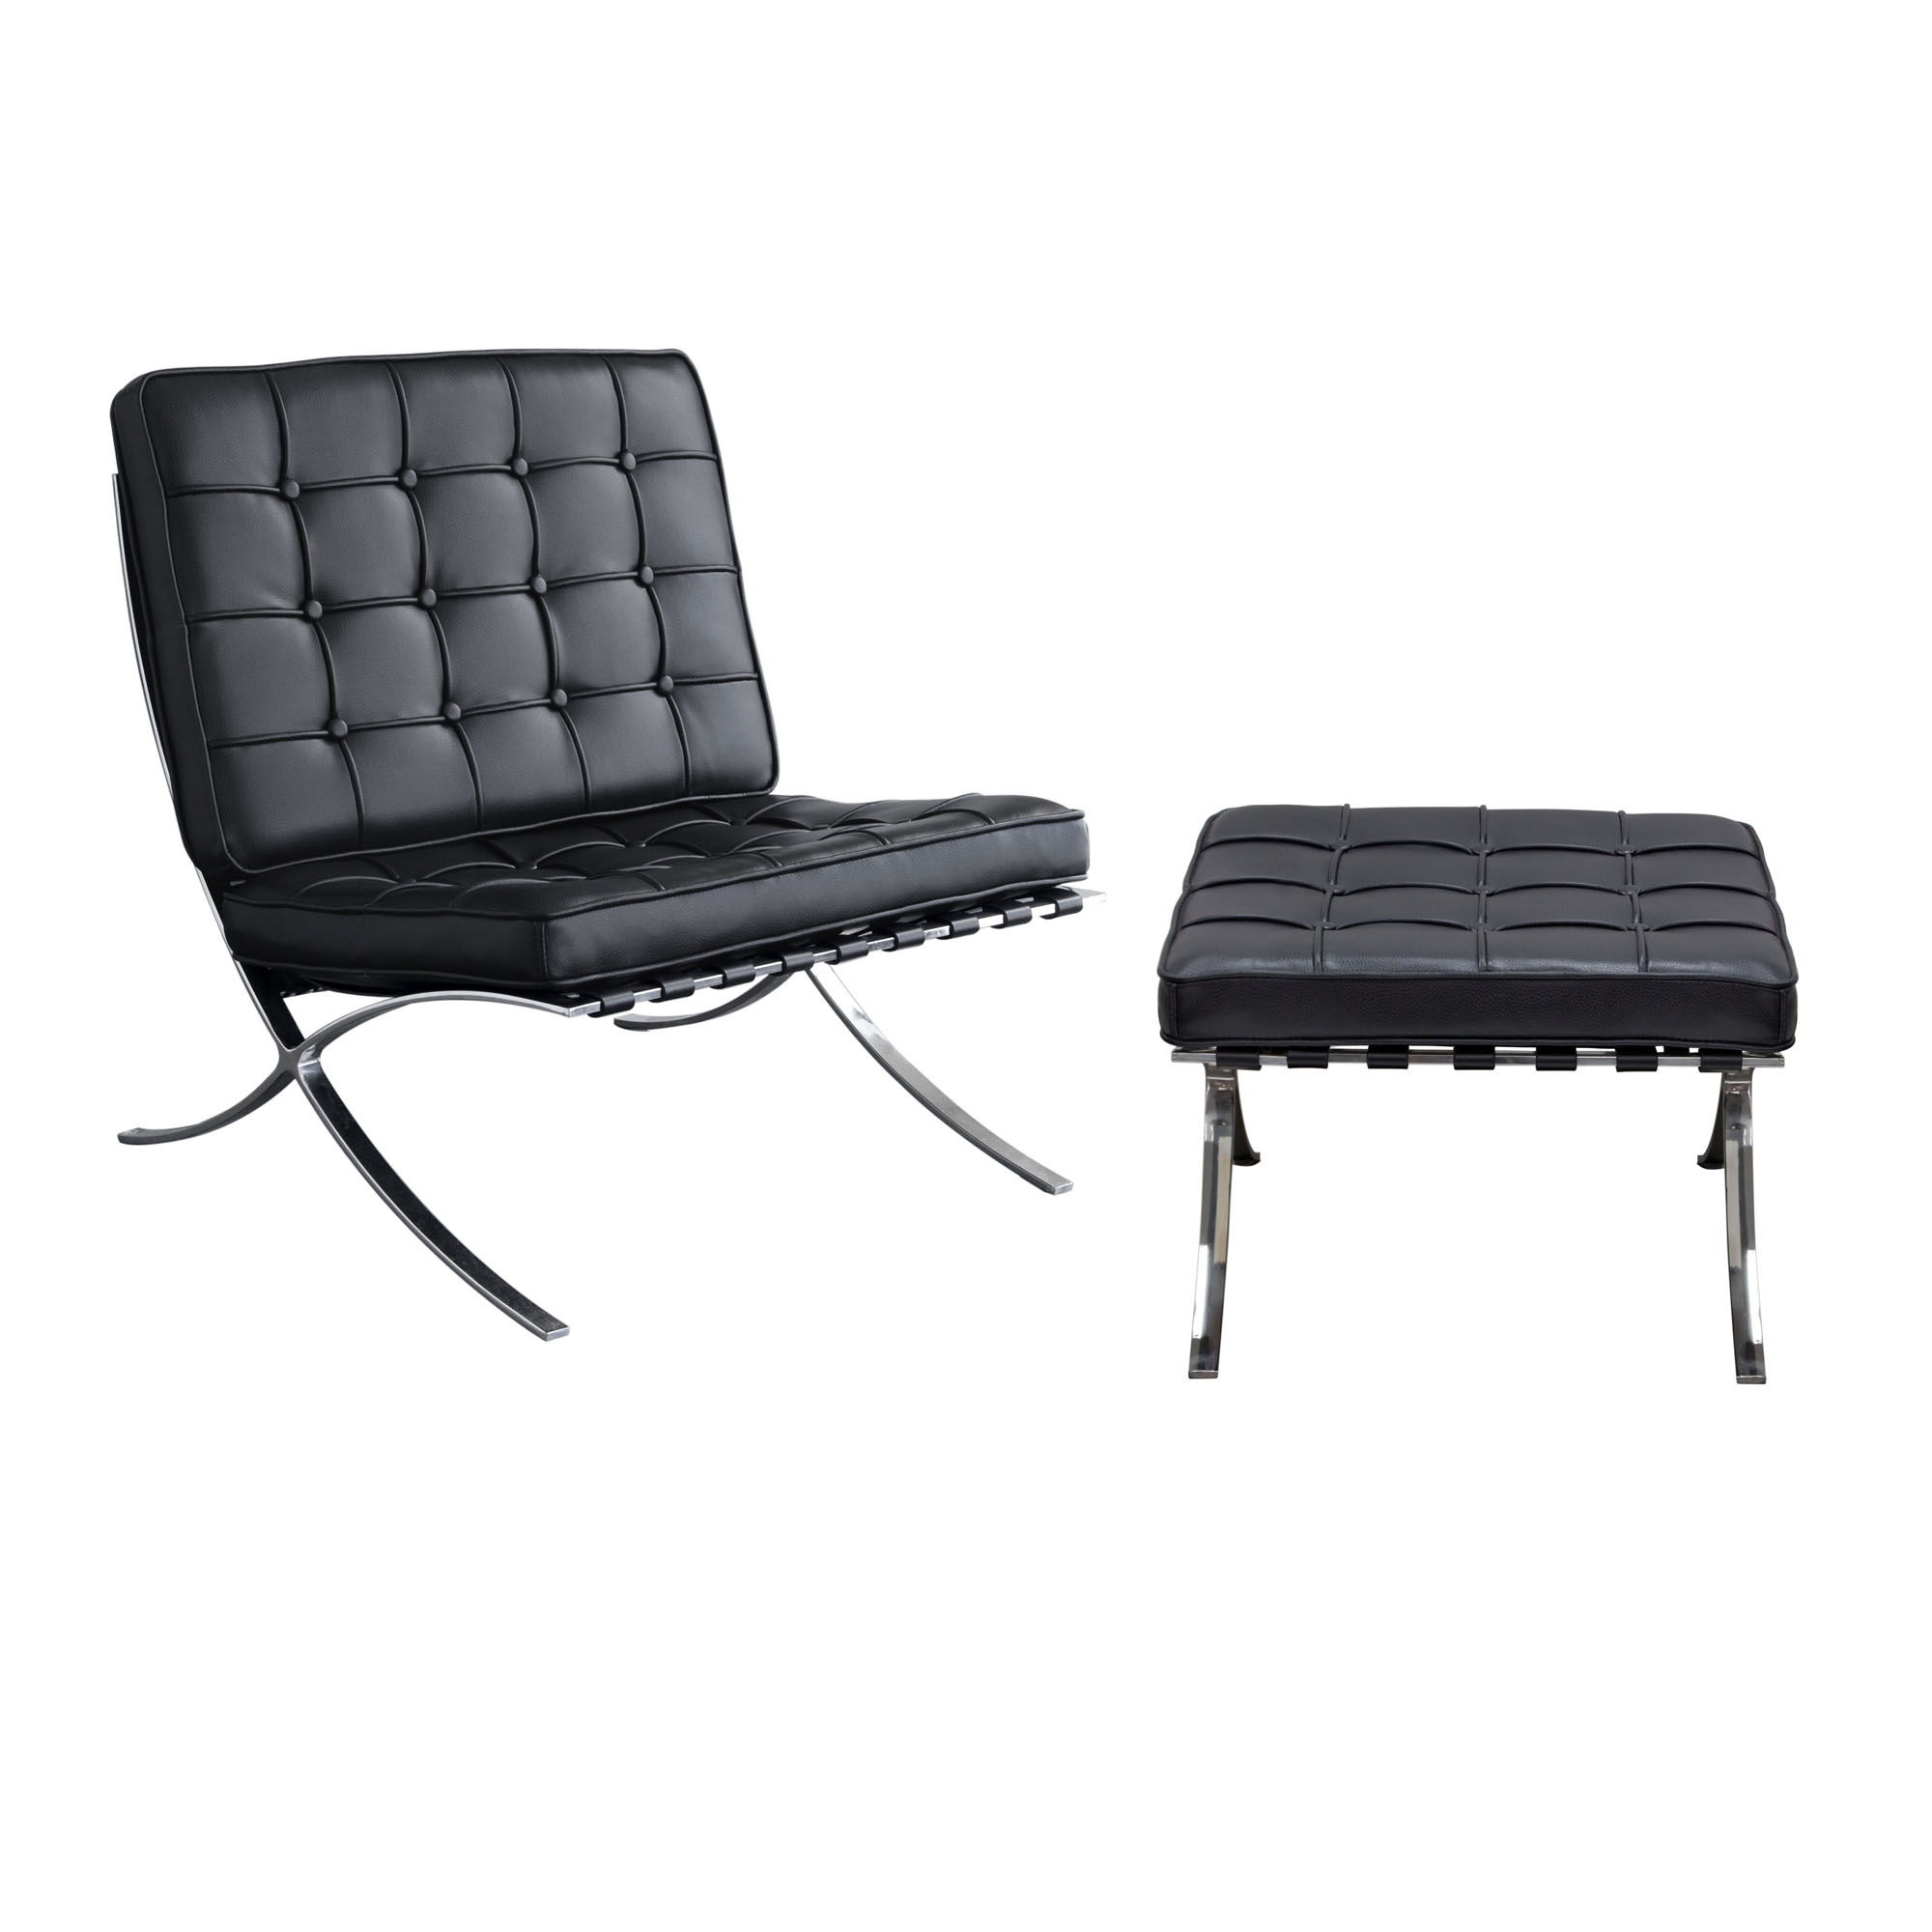 Admirable Diamond Sofa Cordoba Black Bonded Leather Tufted Chair And Ottoman Set Caraccident5 Cool Chair Designs And Ideas Caraccident5Info